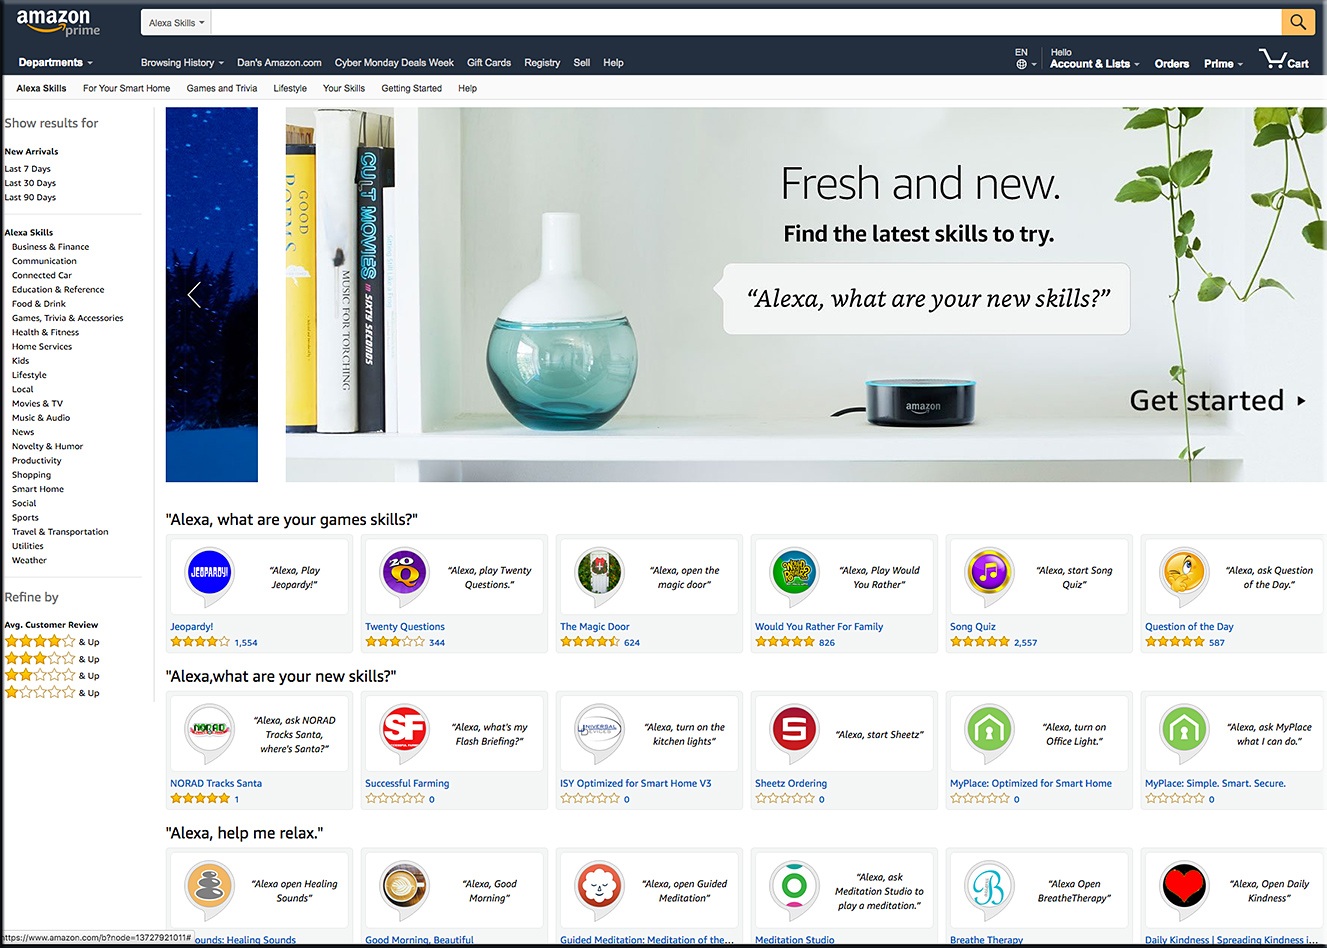 Amazon Alexa Store -- has over 24,000 skills as of November 29, 2017